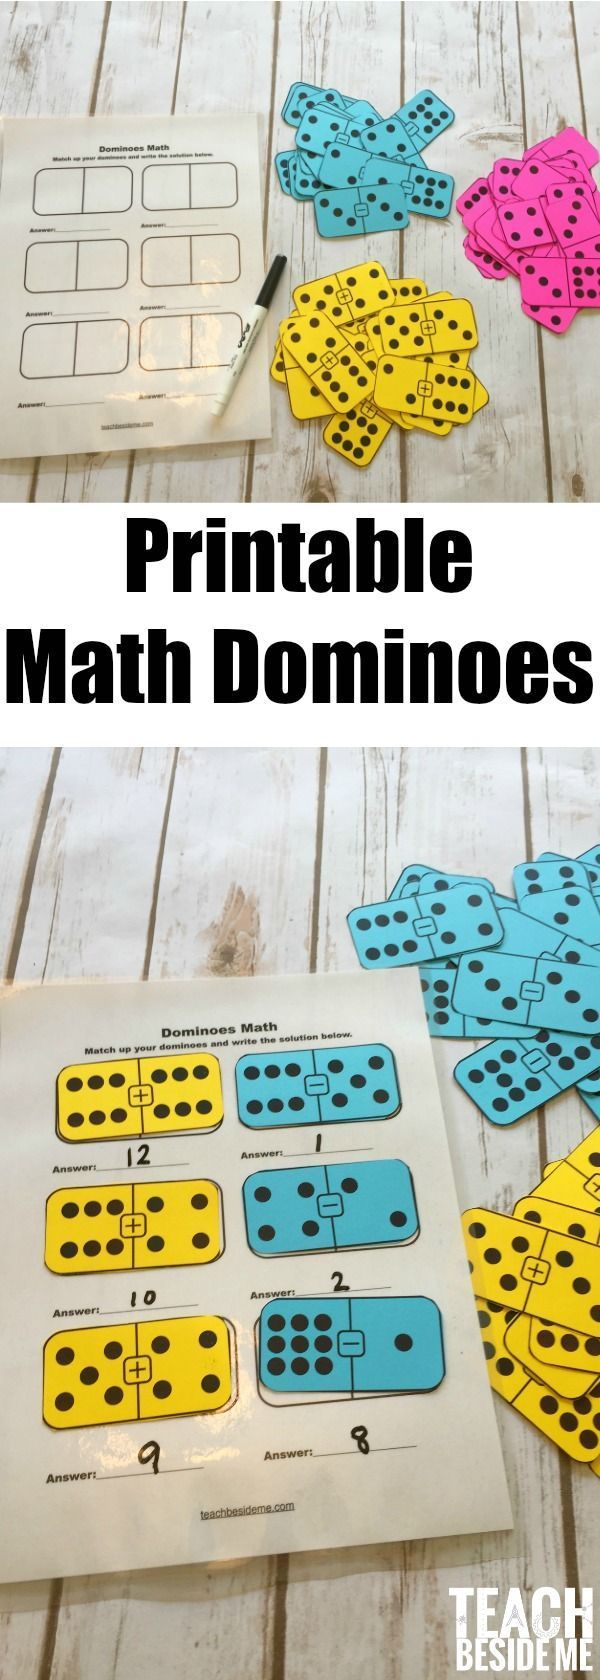 Game with shapes of different colors crossword - Printable Math Dominoes For Addition Subtraction Or Multiplication Fun Math Game Or For Math